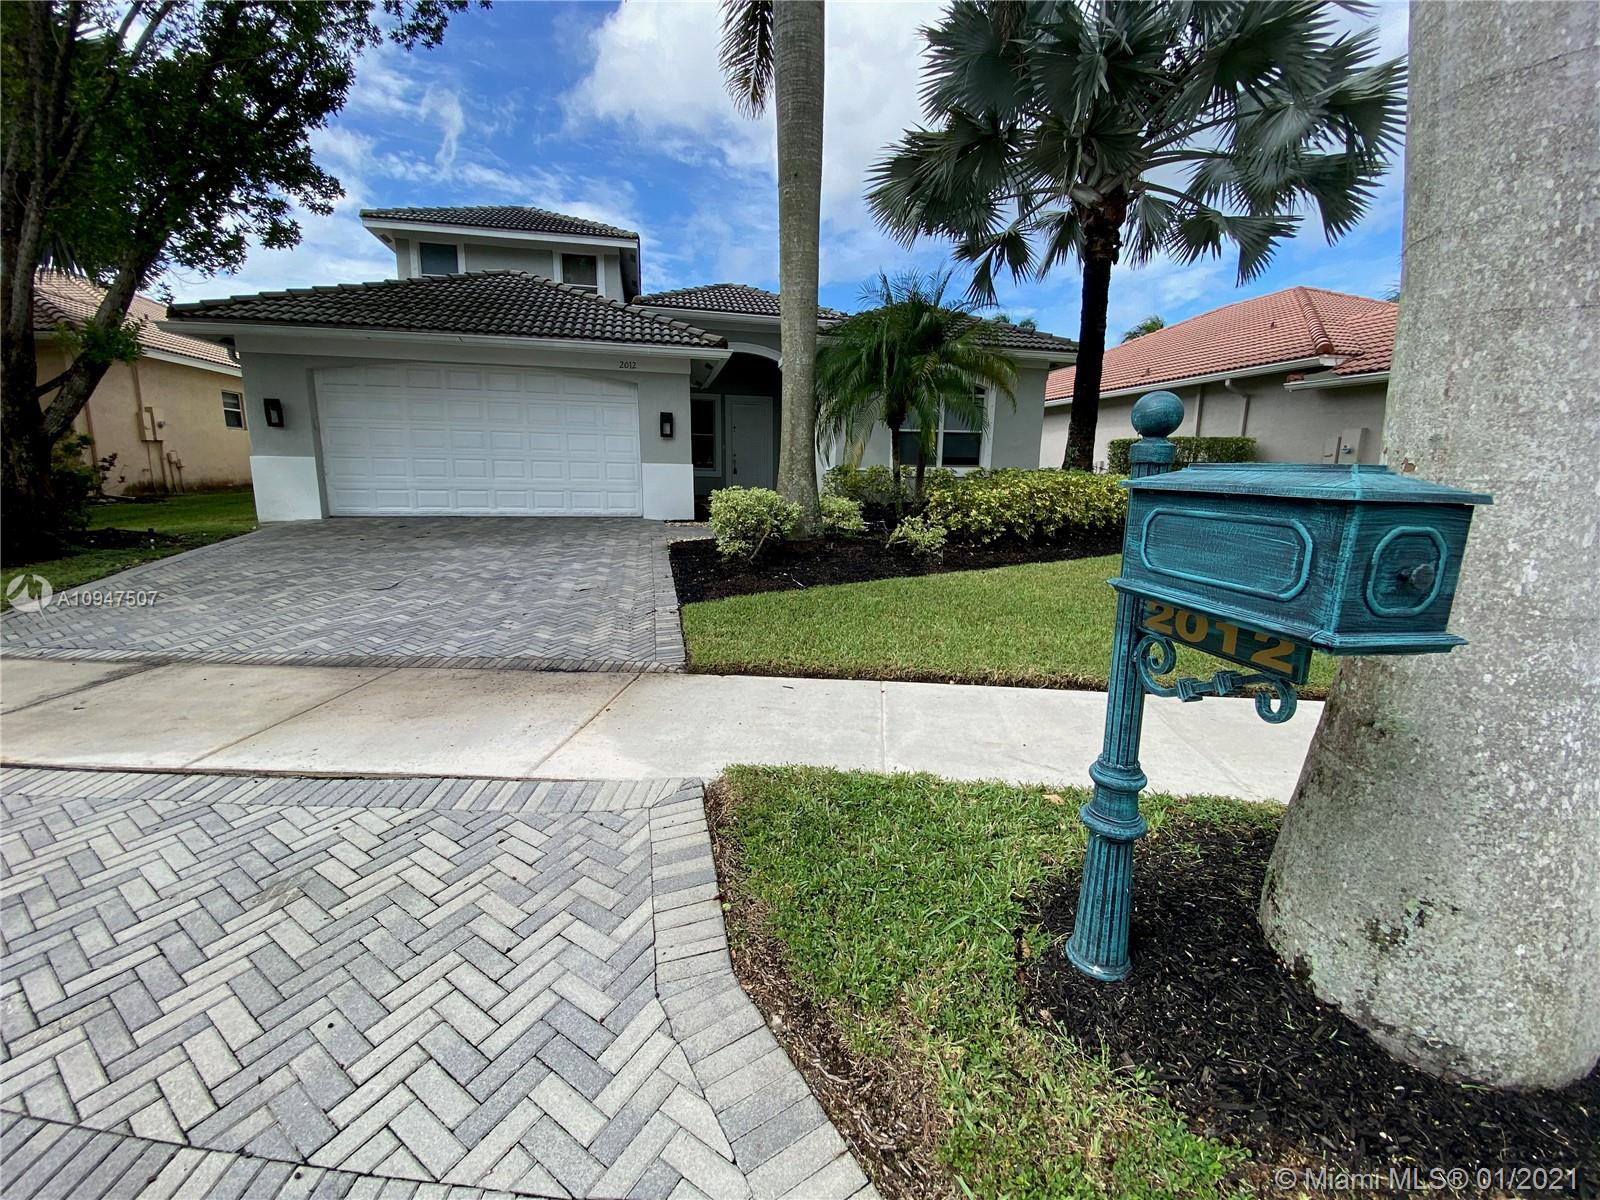 HIGHLY DESIRABLE HOME LOCATED IN WESTON HILLS,REAL HARDWOOD FLOORS IN ALL BEDROOMS. EXTENDED PAVED PATIO WITH CUSTOM POOL & SPA FULLY FENCED